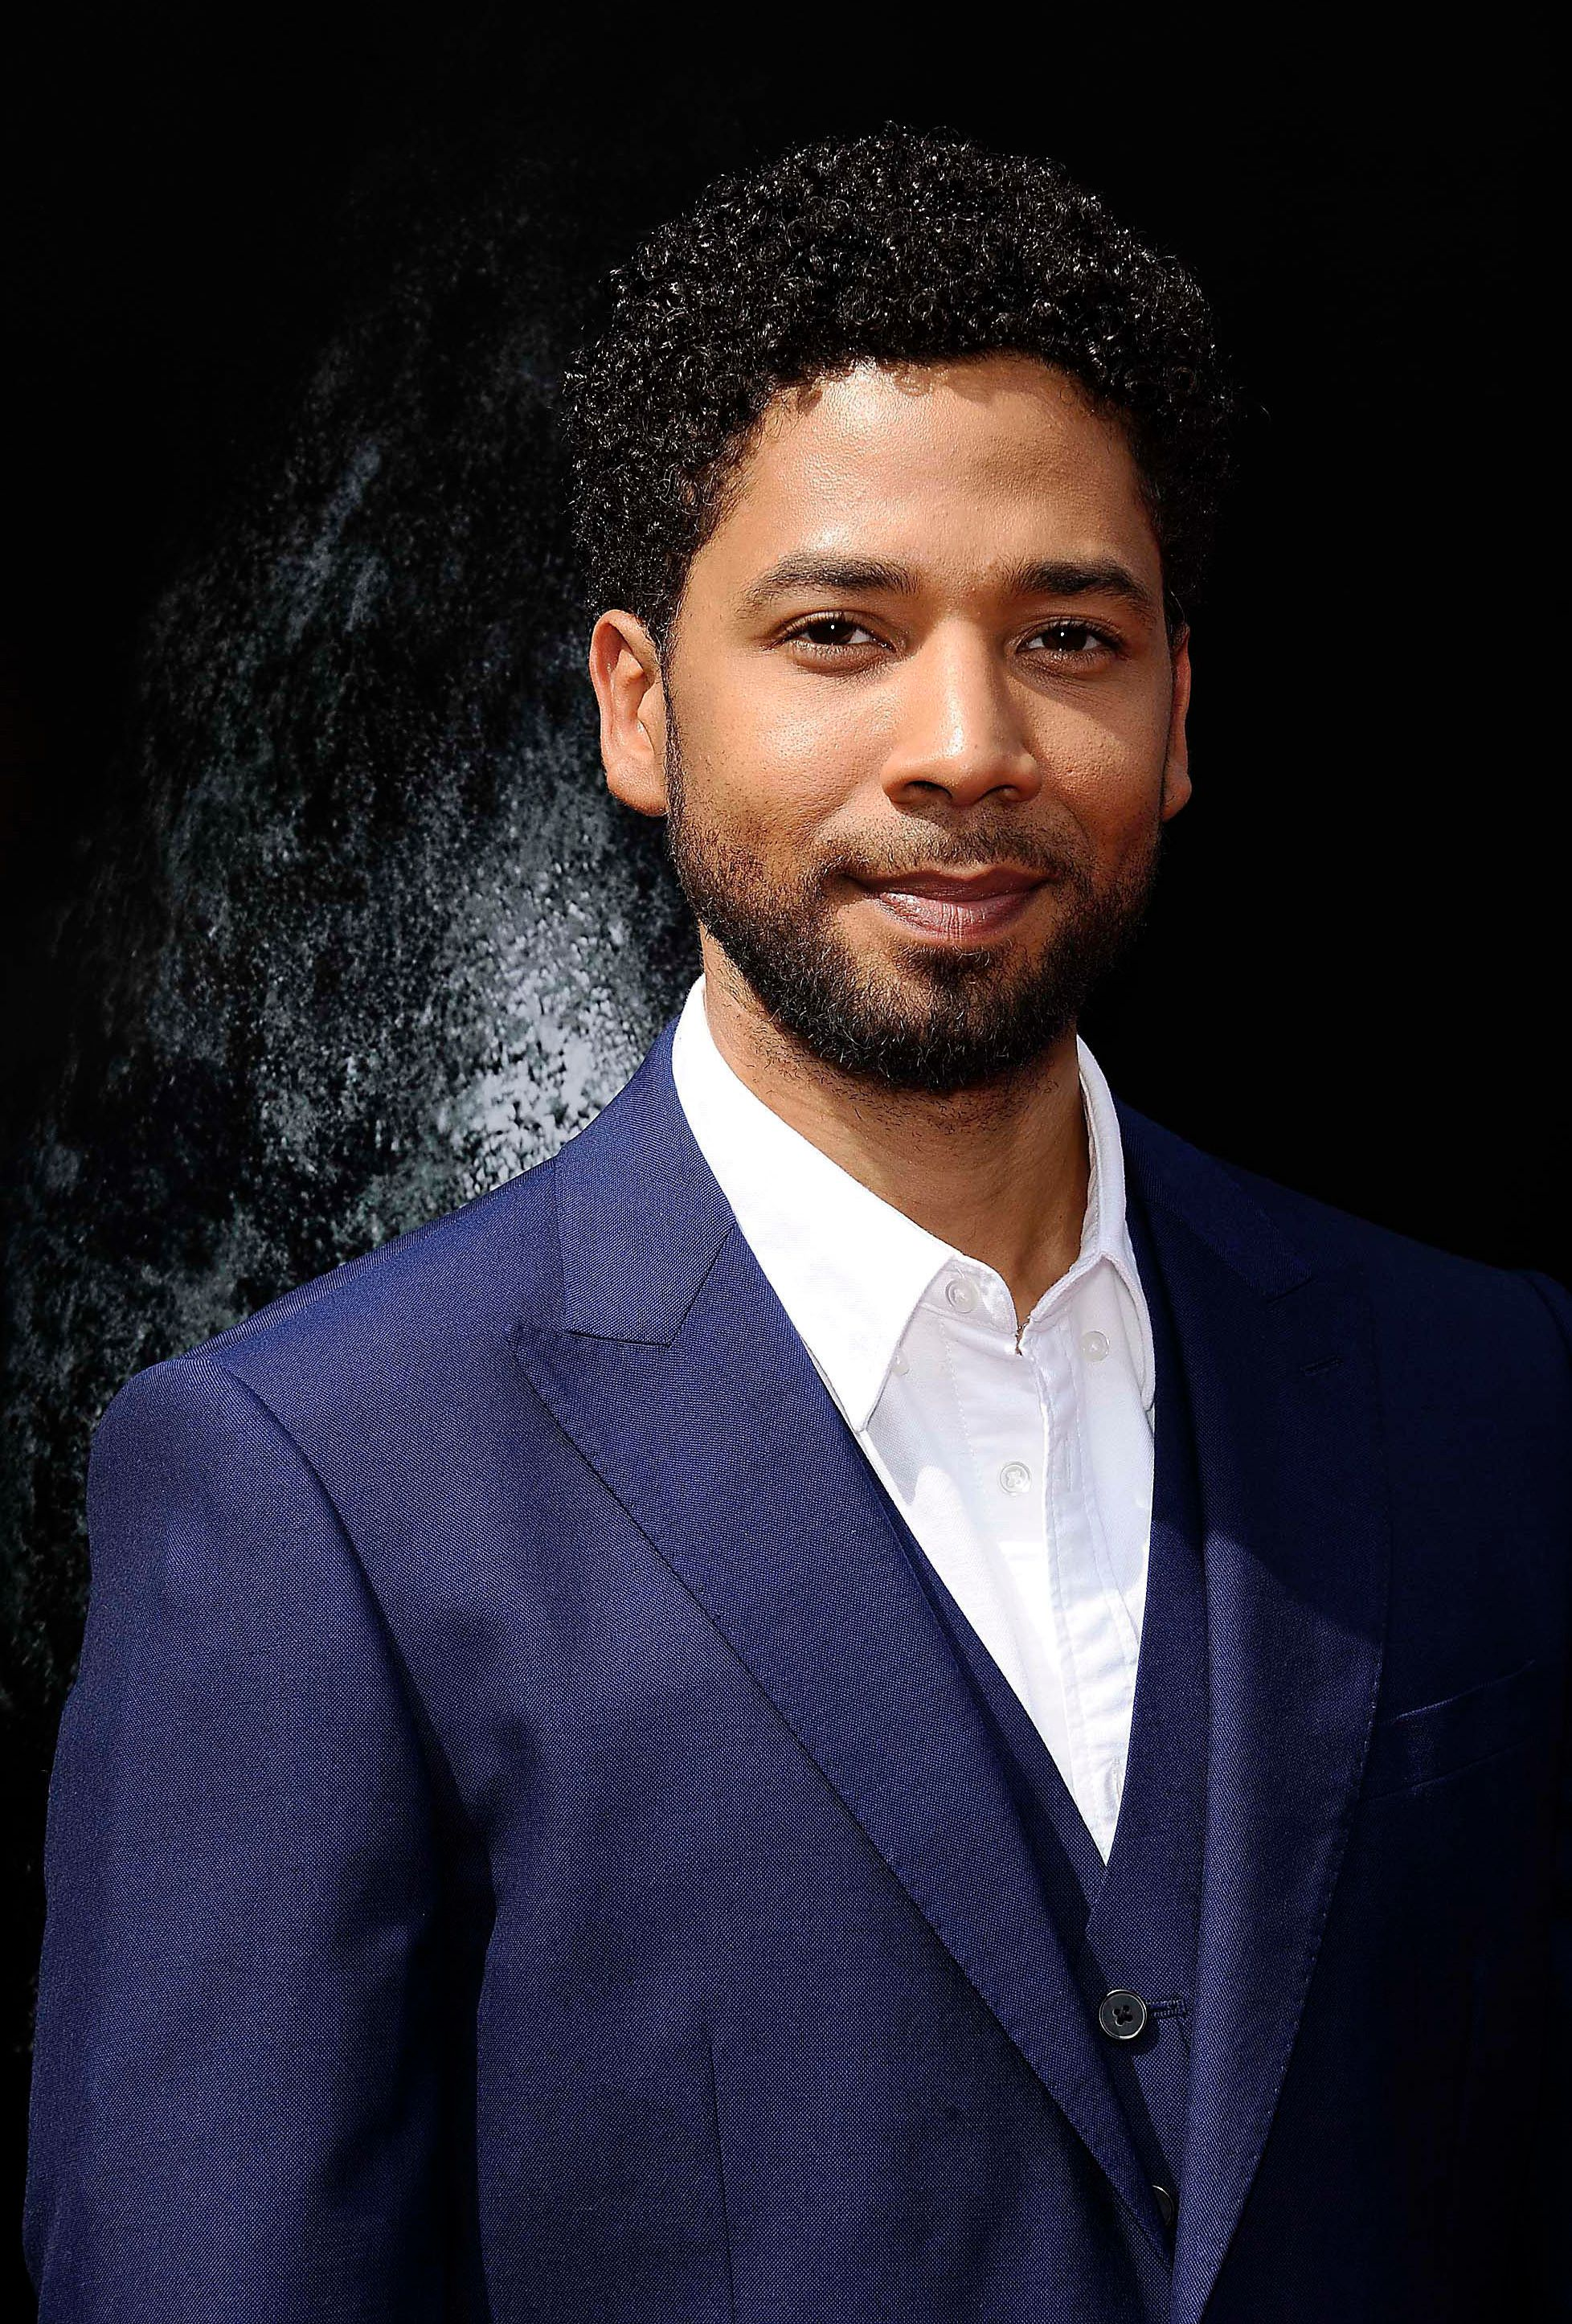 """February 21st 2019 - Jussie Smollett is under arrest in custody of Chicago police. He has been charged with Disorderly Conduct / Filing A False Police Report in connection with the January 29th incident in which he claimed he was the victim of an attack. Following below, these charges allege that Smollett orchestrated the attack. - February 18th 2019 - The investigation of the alleged attack on actor Jussie Smollet continues with new evidence suggesting that Smollett may have orchestrated the attack. Smollett continues to deny any involvement in said orchestration according to a statement from his attorneys. Update to the following - January 29th 2019 - Actor Jussie Smollett was the victim of an attack in Chicago, Illinois which is being investigated as a possible hate crime. According to police reports, he was assaulted after leaving a fast food restaurant by two men in ski masks who made racial and homophobic slurs and then poured an unknown liquid on Smollett and put a noose around his neck. Smollett identifies himself as a gay man and his mother is African-American. Further reports claim Smollett told police that his attackers touted """"MAGA"""" (Make America Great Again) during the assault. Smollett said that he fought off the attackers and then admitted himself to Northwestern Memorial Hospital from which he was released """"in good condition"""" later that morning. - File Photo by: zz/Michael Germana/STAR MAX/IPx 2017 5/17/17 Jussie Smollett at a Hand and Foot Print Ceremony honoring Sir Ridley Scott at the TCL Chinese Theatre in Los Angeles, CA."""